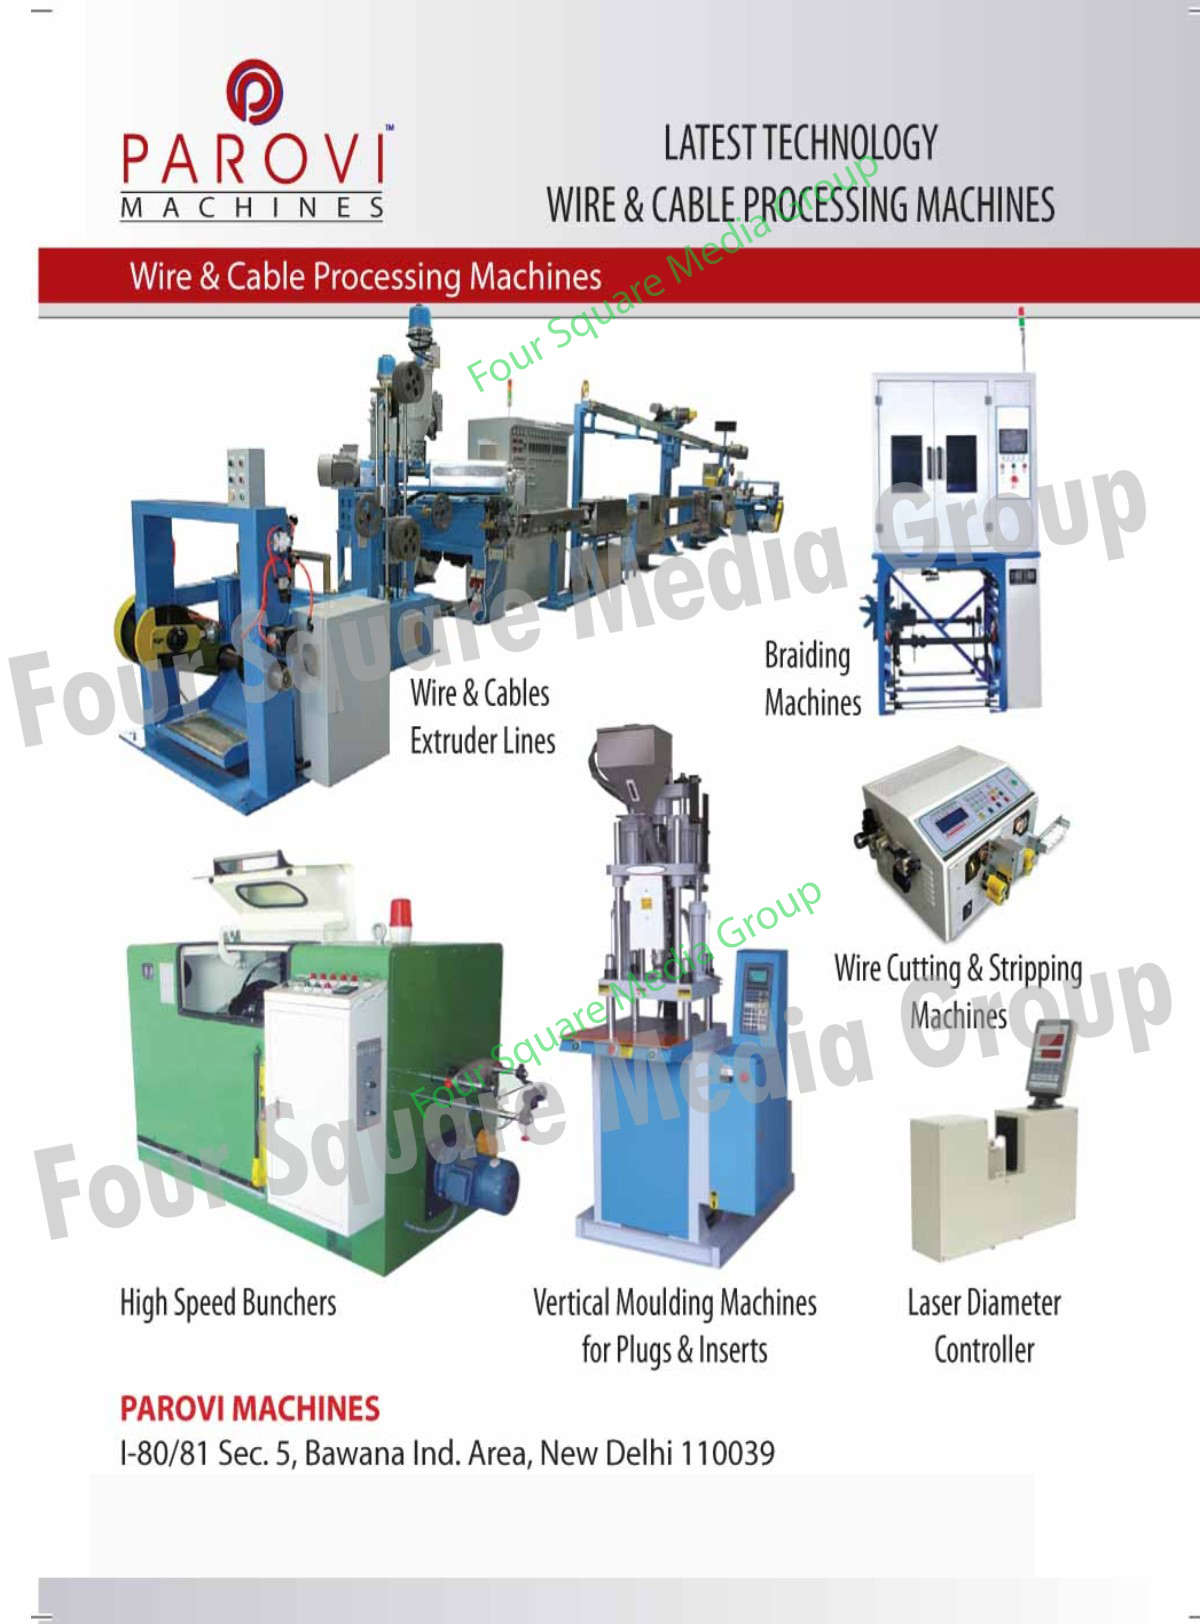 Wire Extruder Lines Cable Extruder Lines Braiding